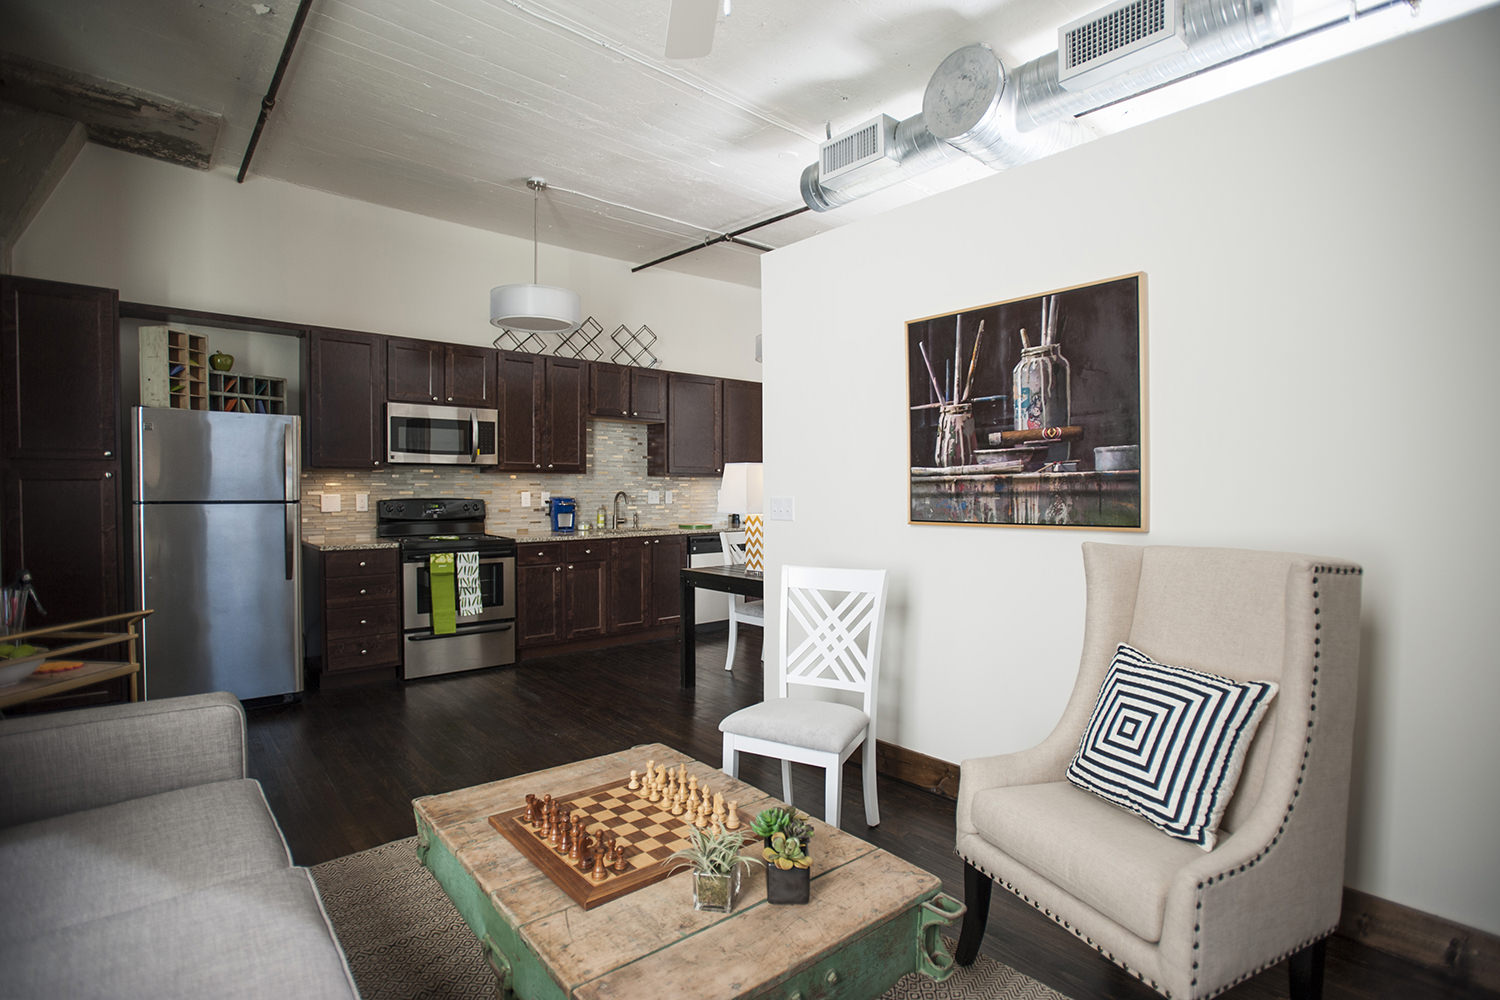 Pressbox Lofts Downtown Memphis, Tennessee - Historic Redevelopment Renovation - 3.jpg